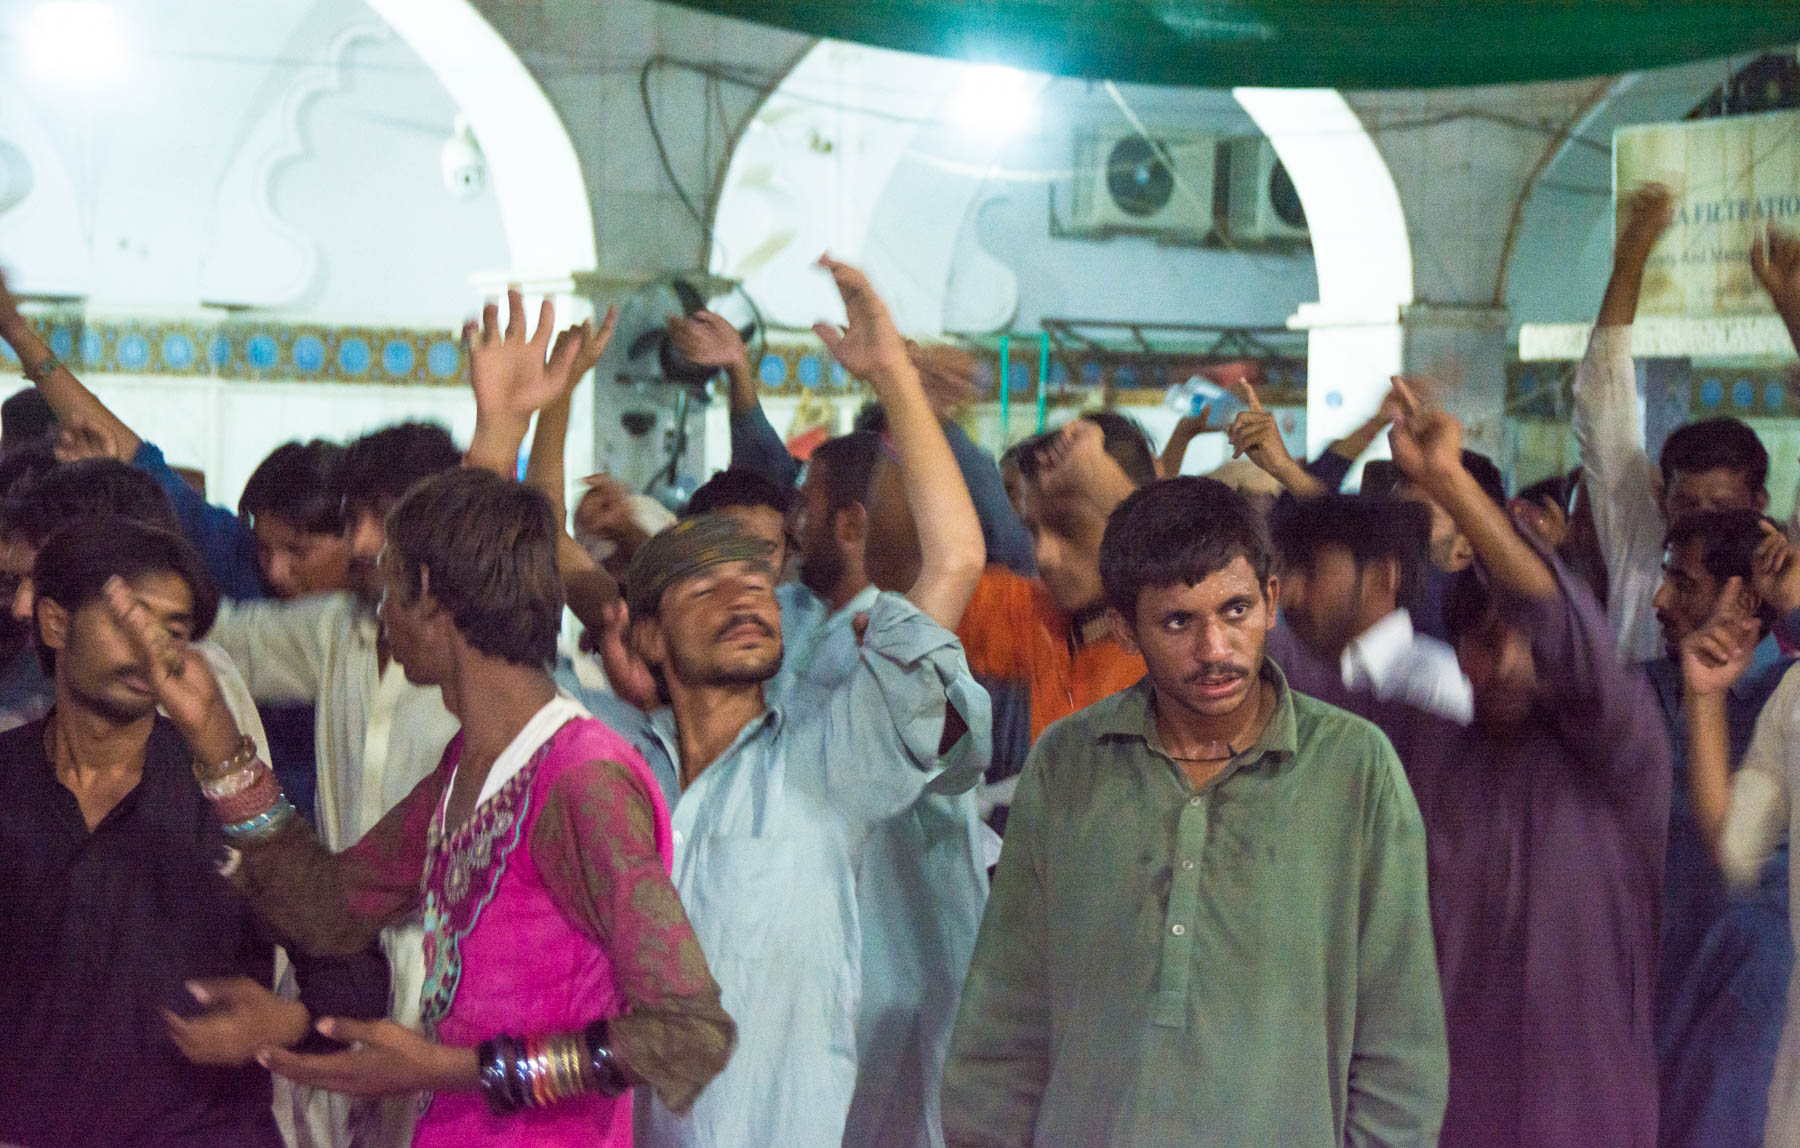 Entranced Sufi dancers during Ramadan at the Lal Shahbaz Qalandar shrine in Sehwan, Pakistan